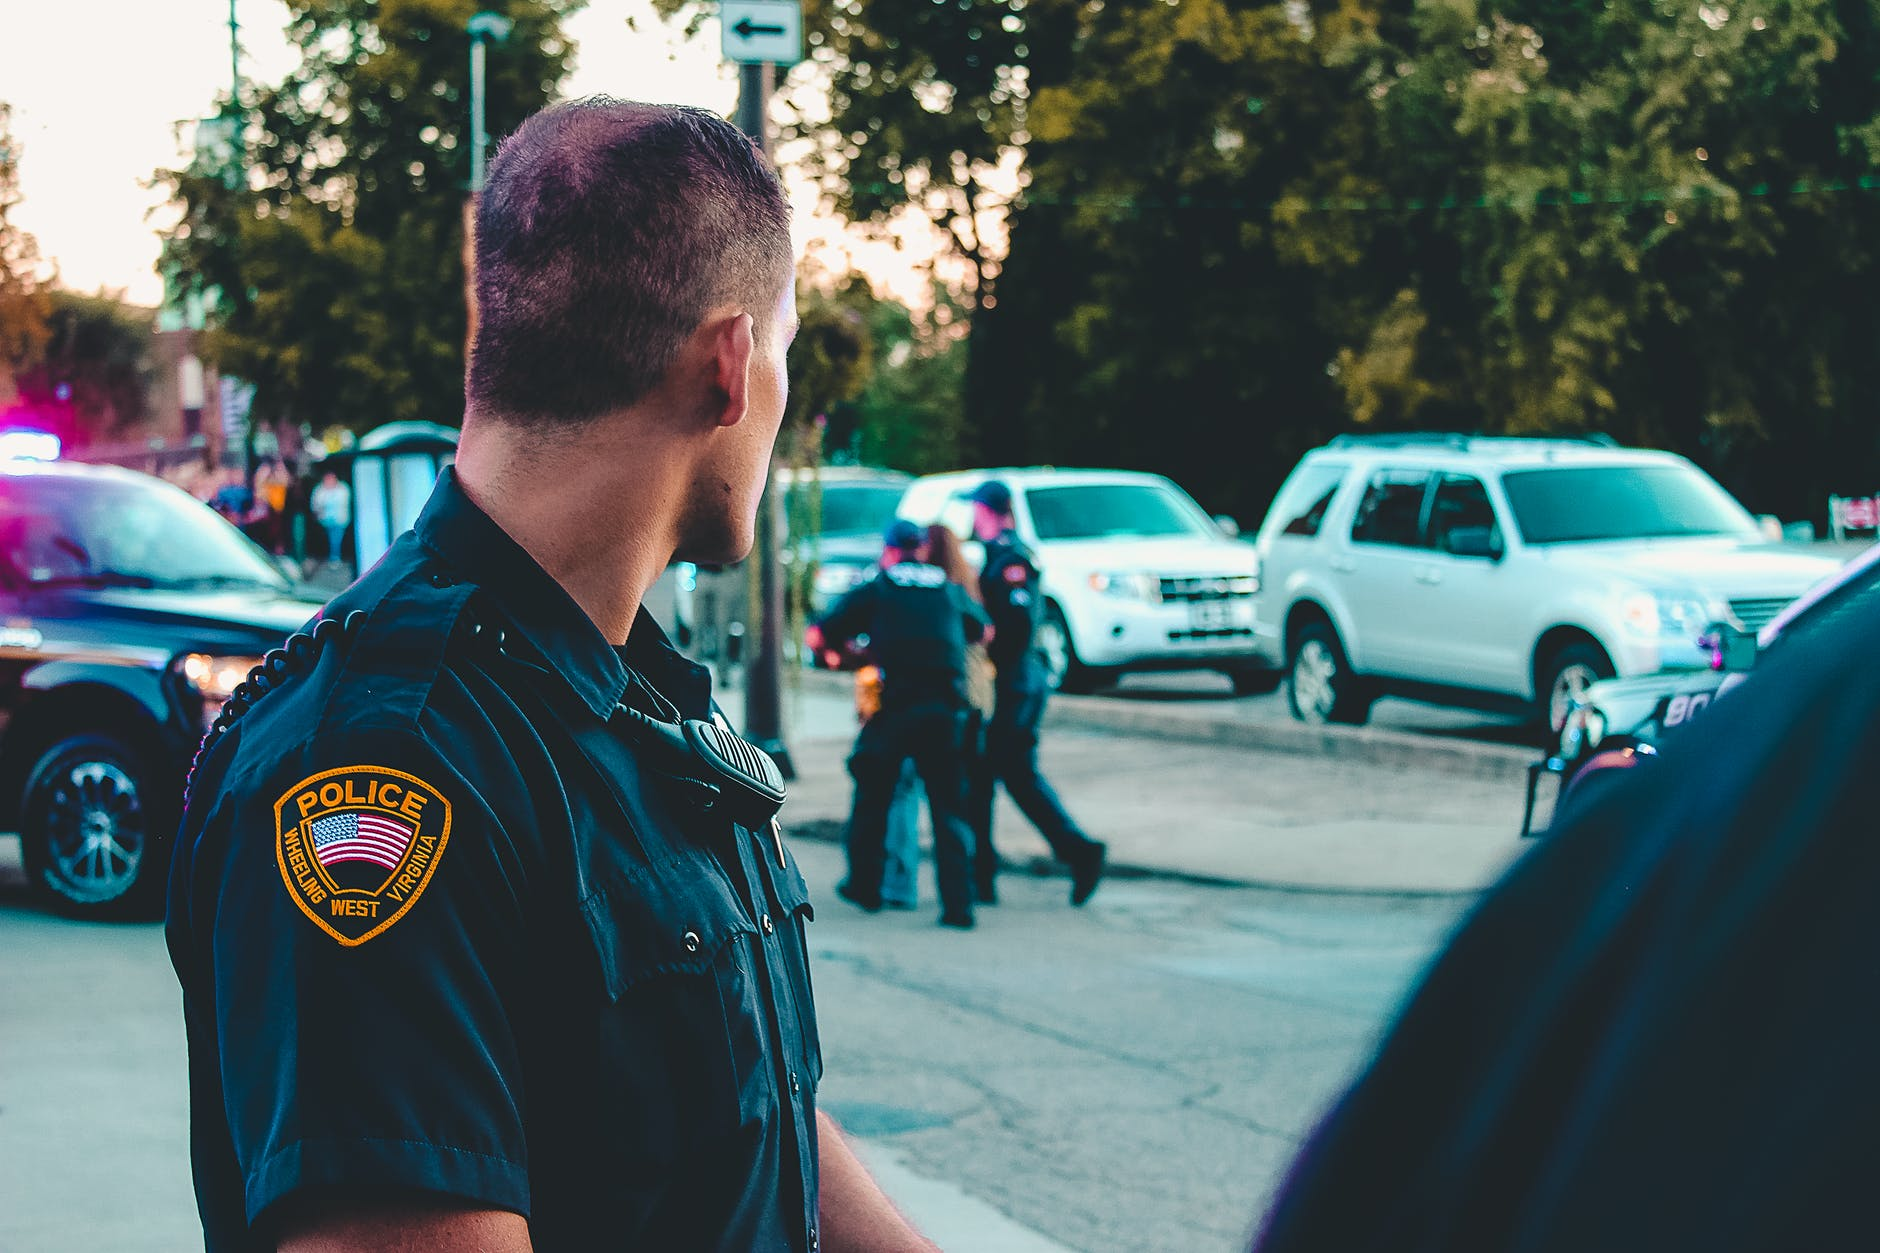 Colorado reform law ends immunity for police in civil misconduct cases